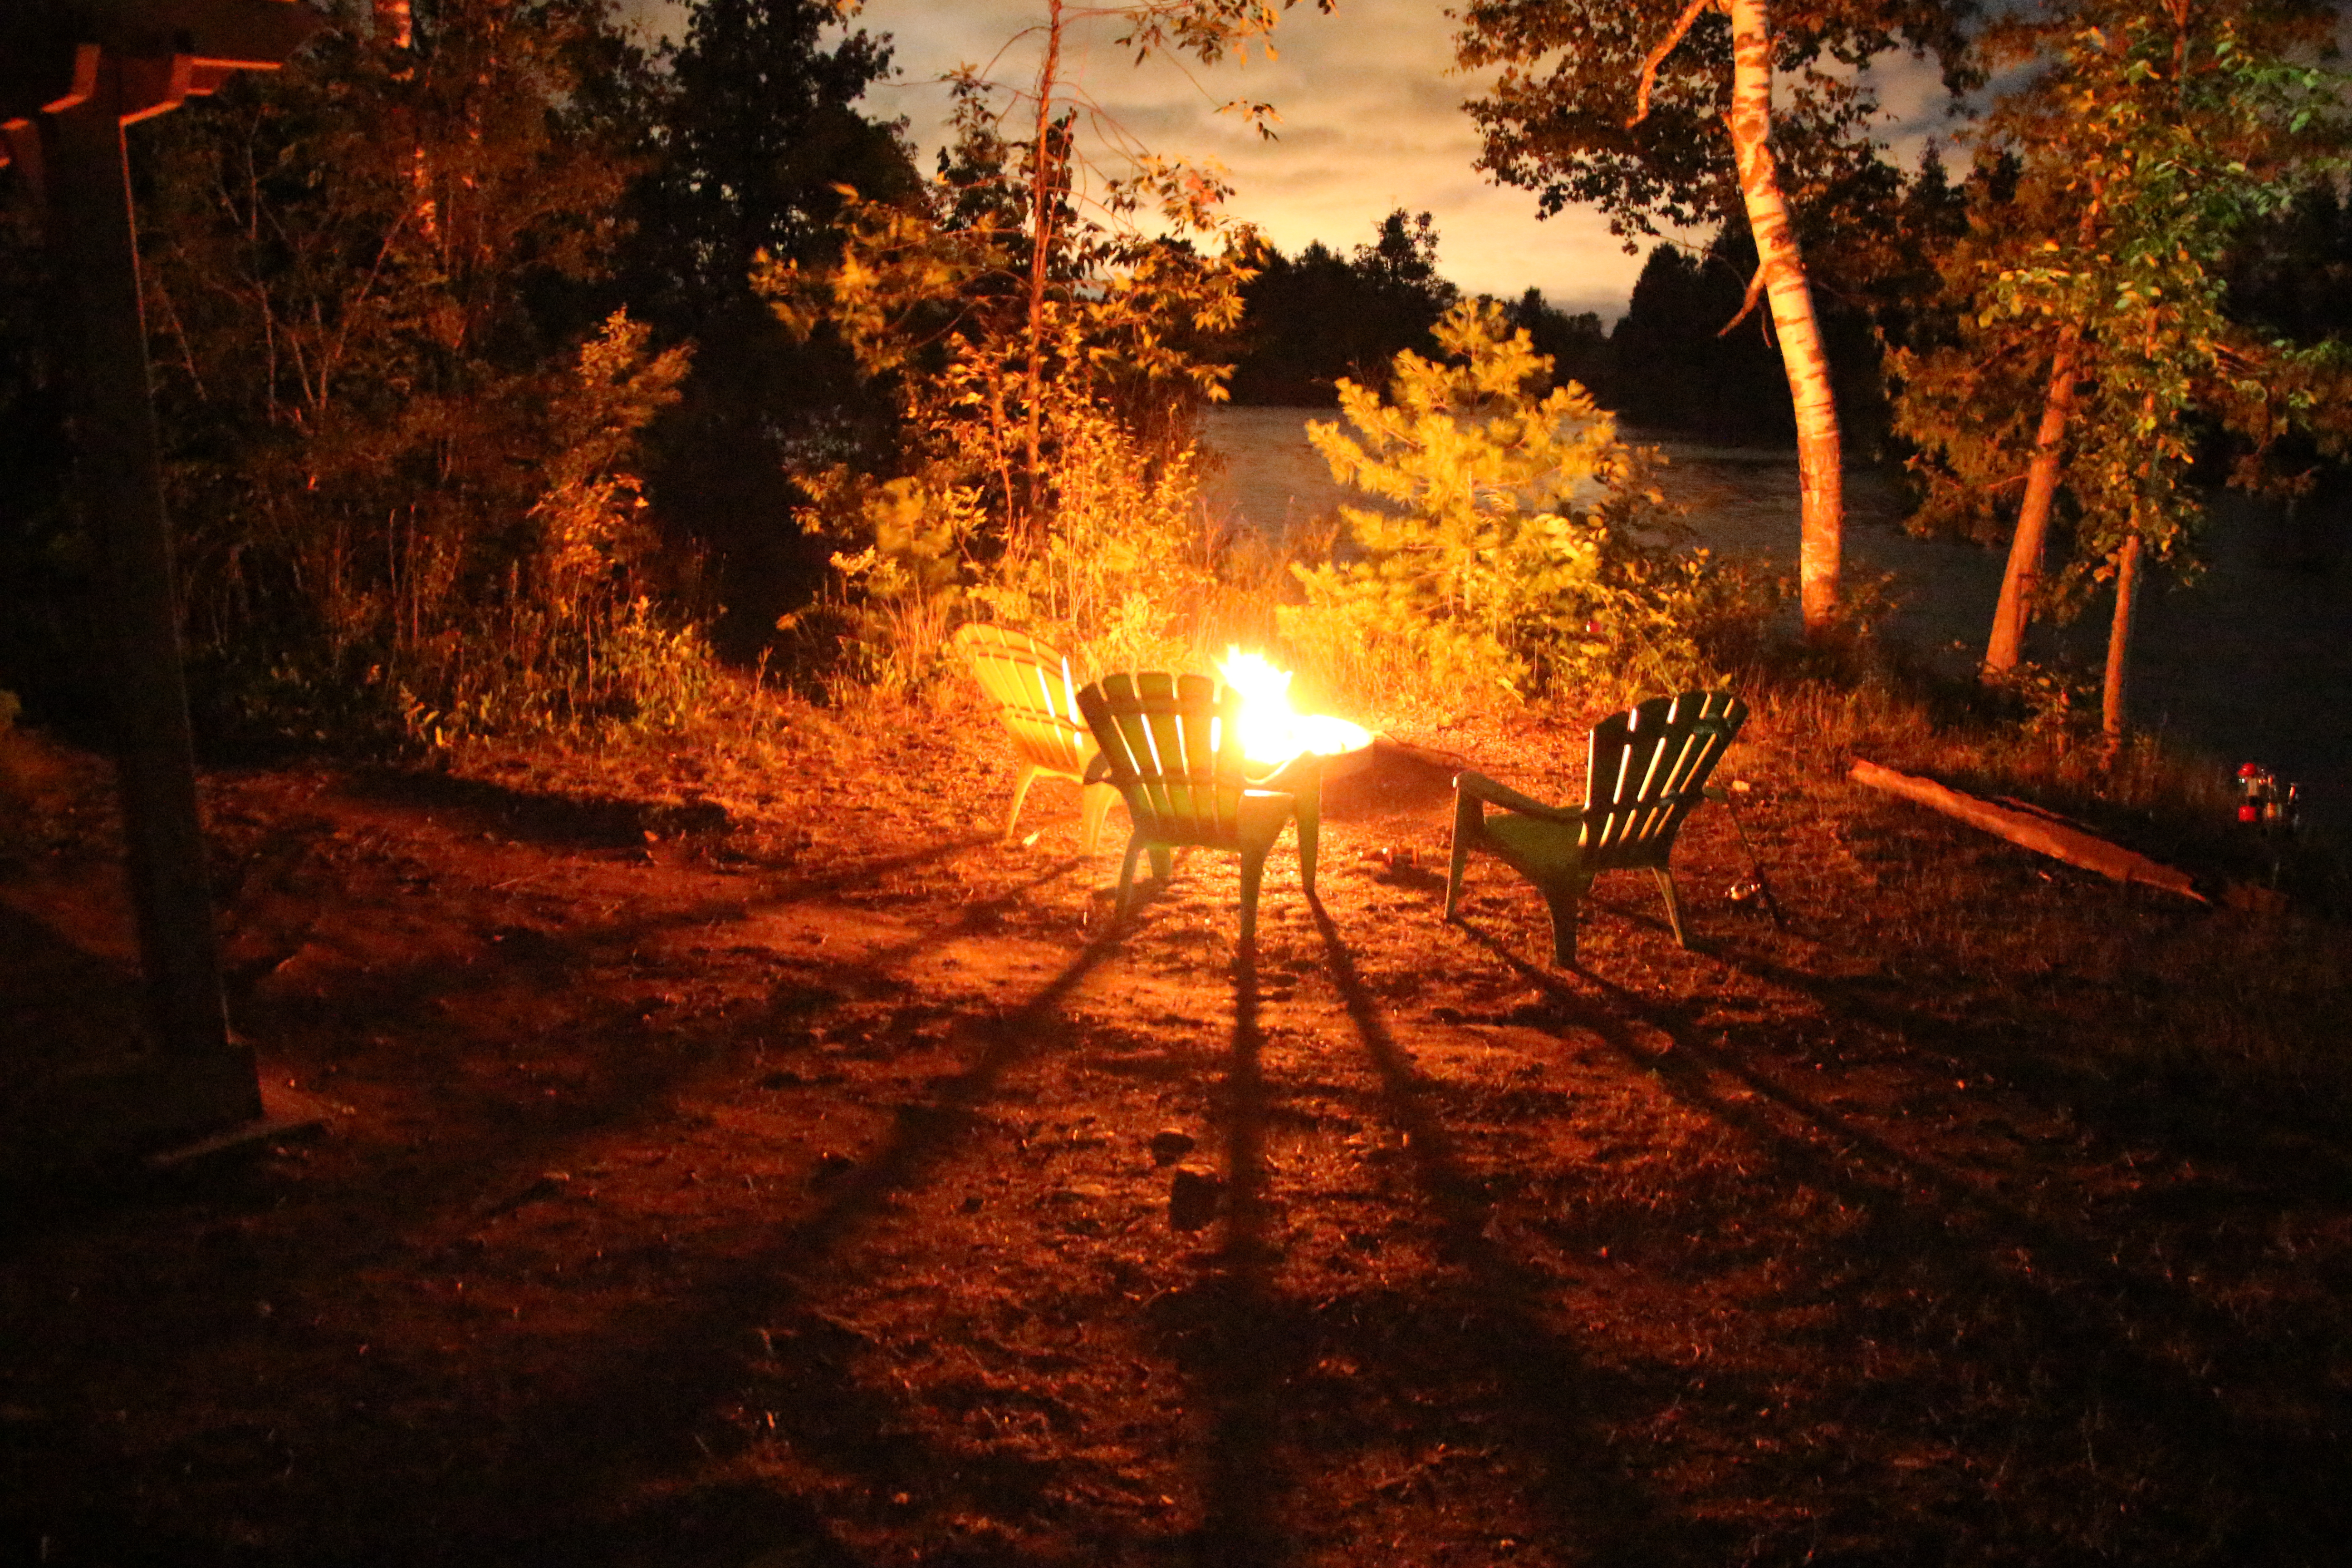 Every OTENTik Site Comes With A Fire Pit Chairs BBQ And Picnic - Fire picnic table